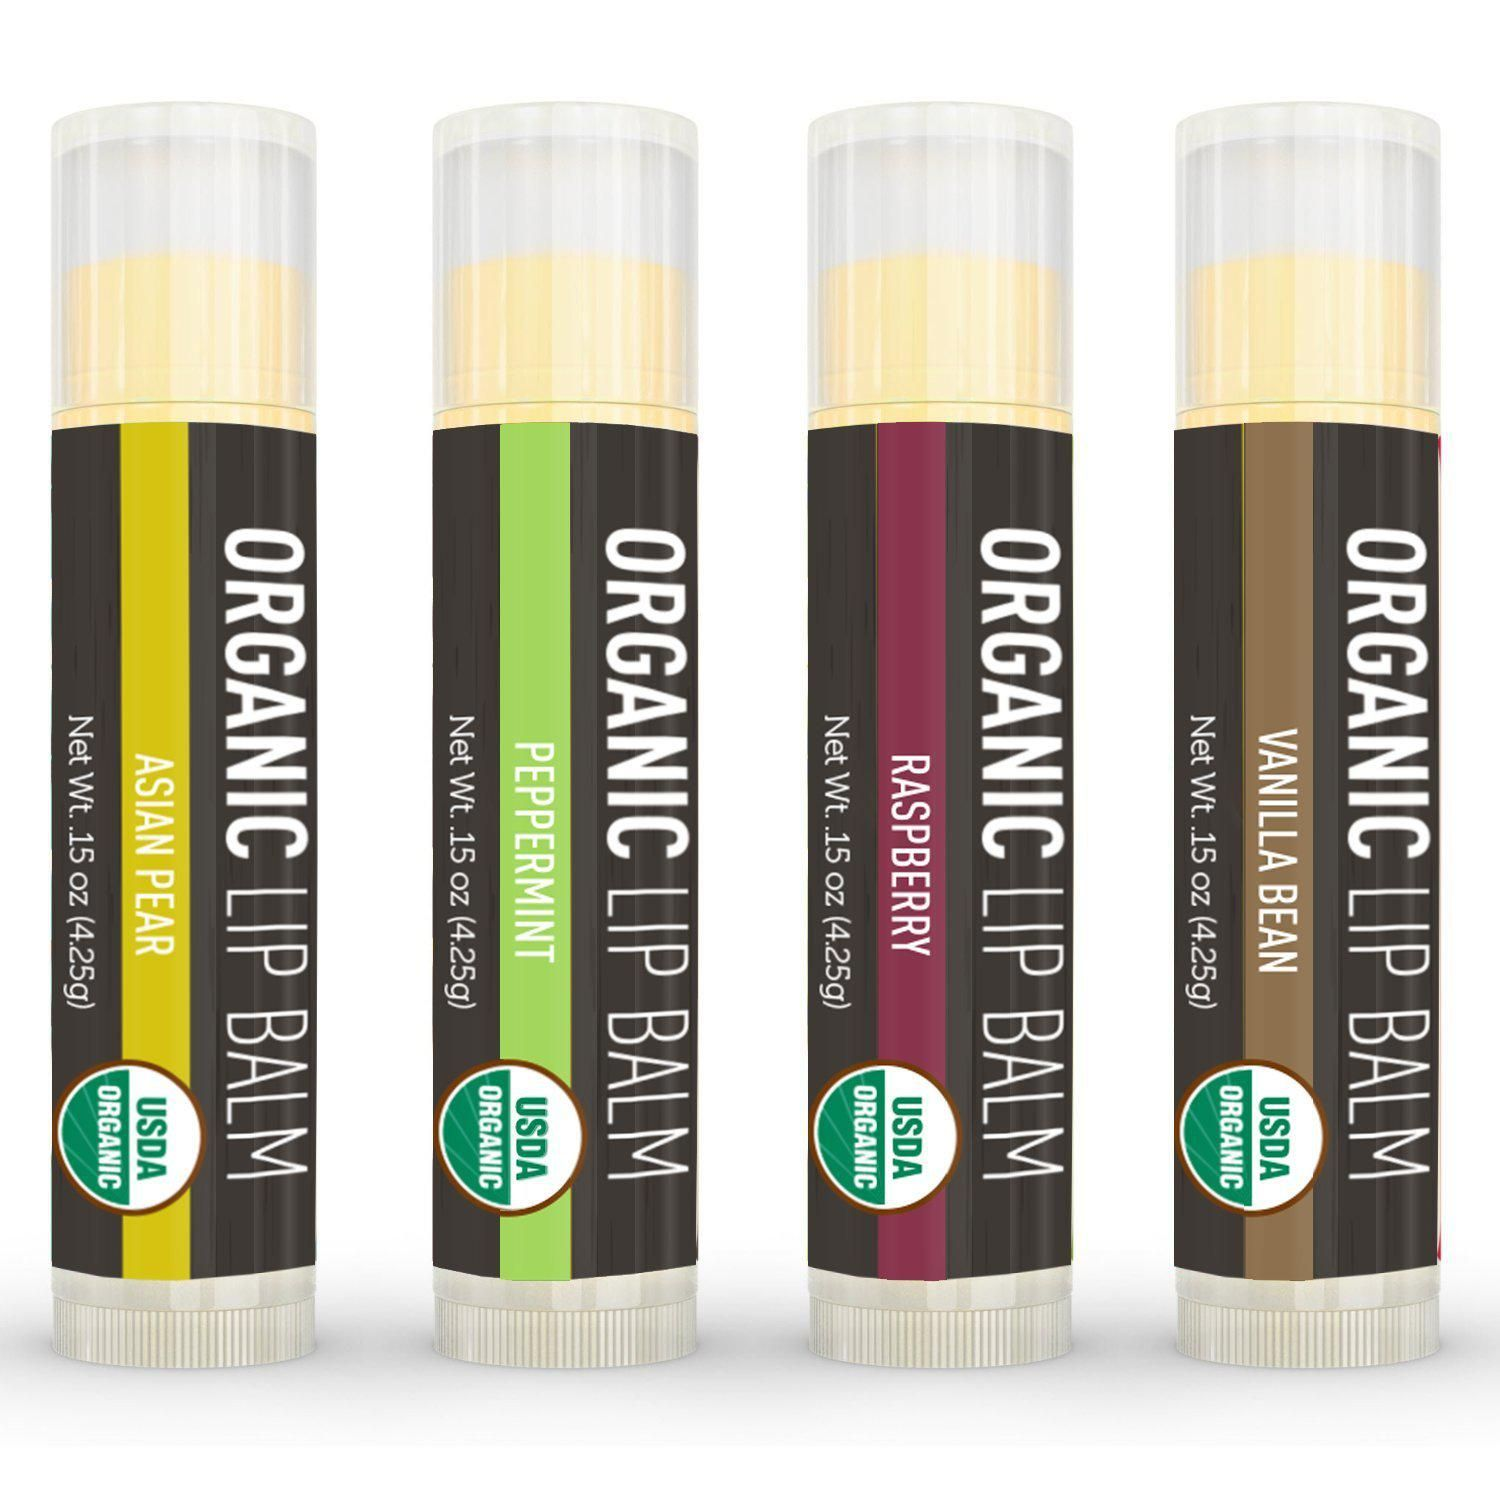 Image result for La Lune Naturals |, 4-pack Organic Lip Balm